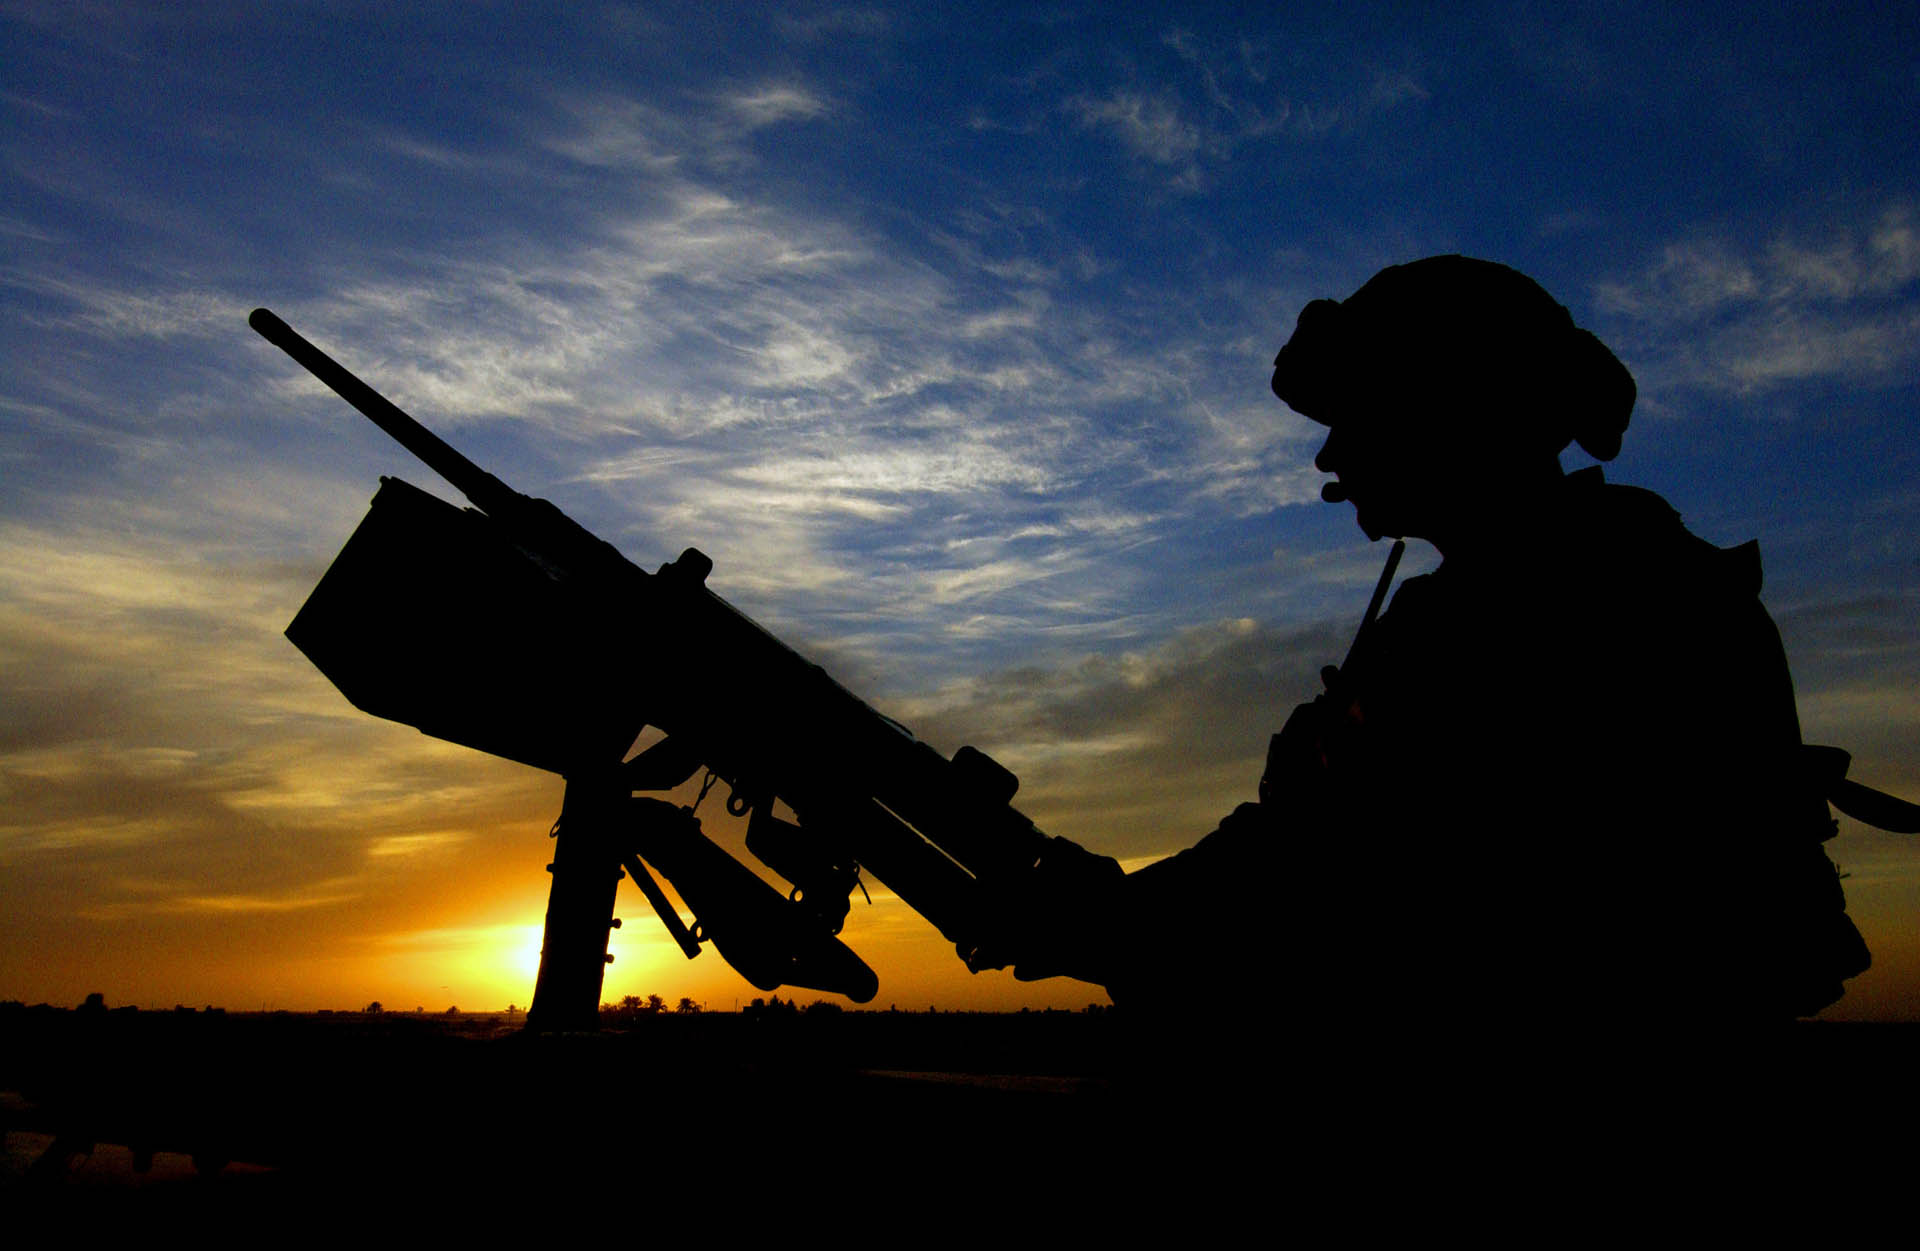 army wallpaper3 Best Army Silhouetted Wallpapers